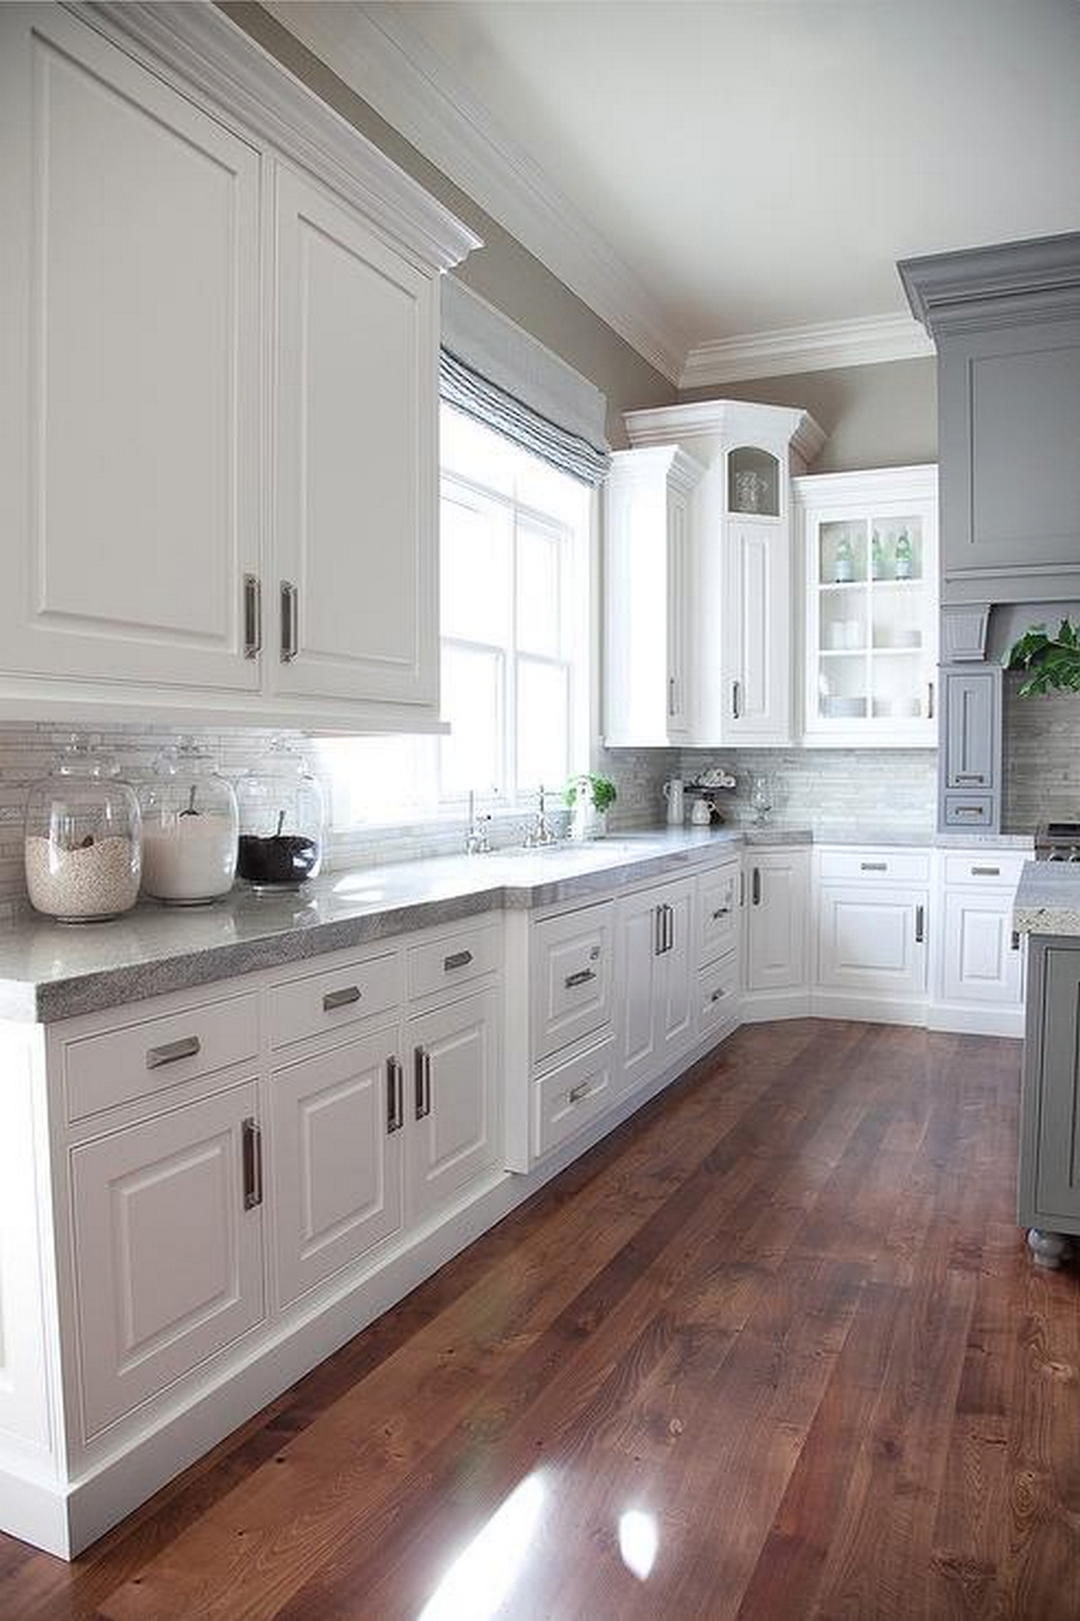 53 Pretty White Kitchen Design Ideas |